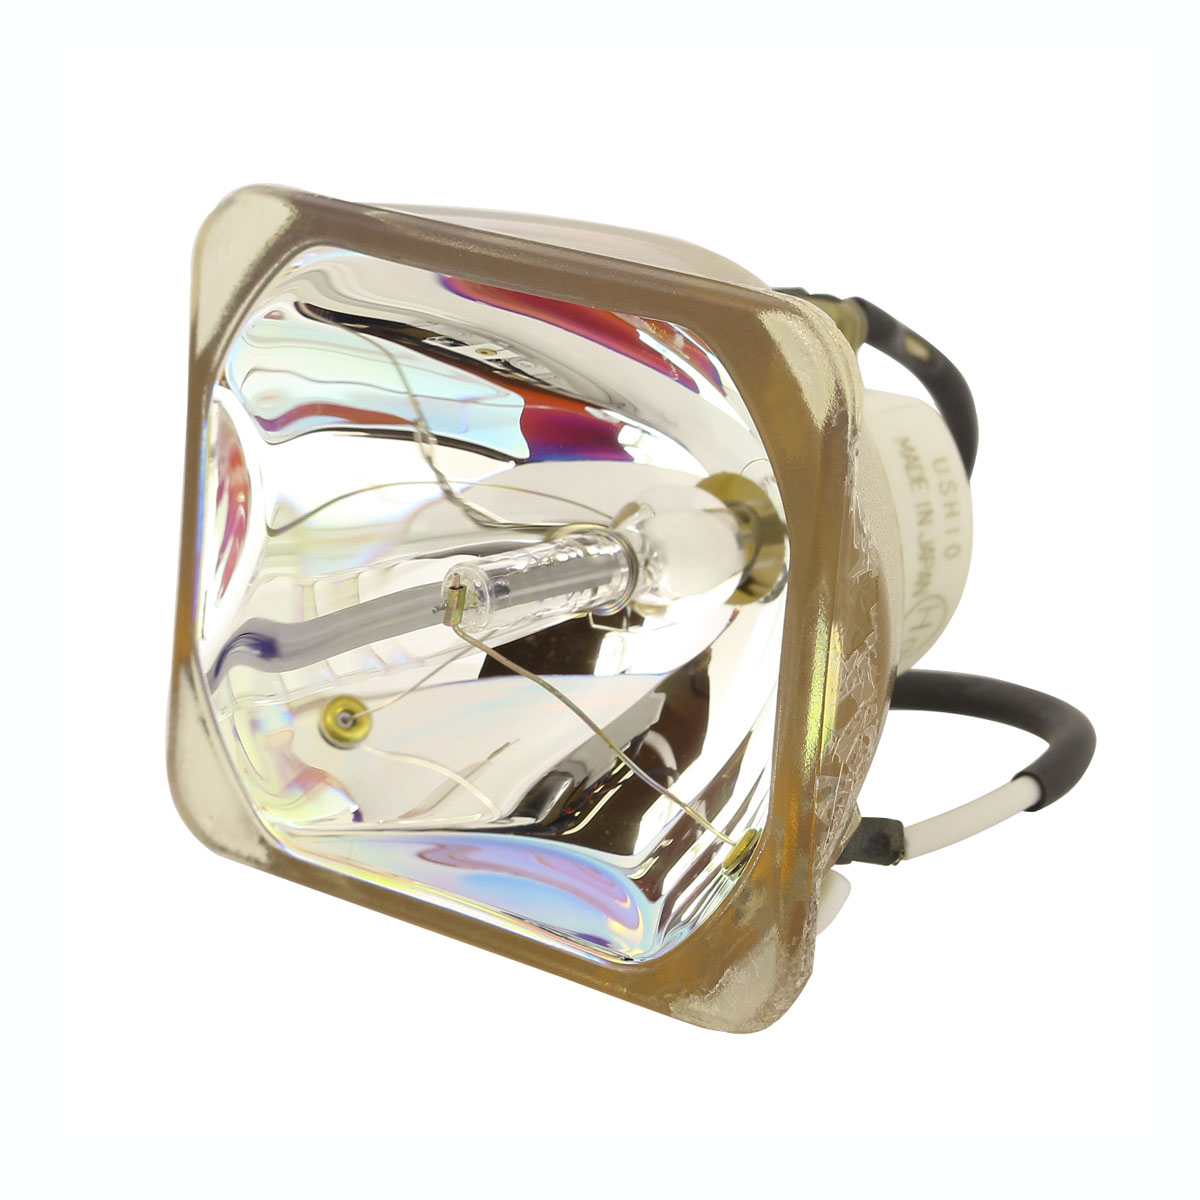 Lutema Platinum Bulb for Canon XEED SX7 Mark II Projector (Lamp Only) - image 5 of 5